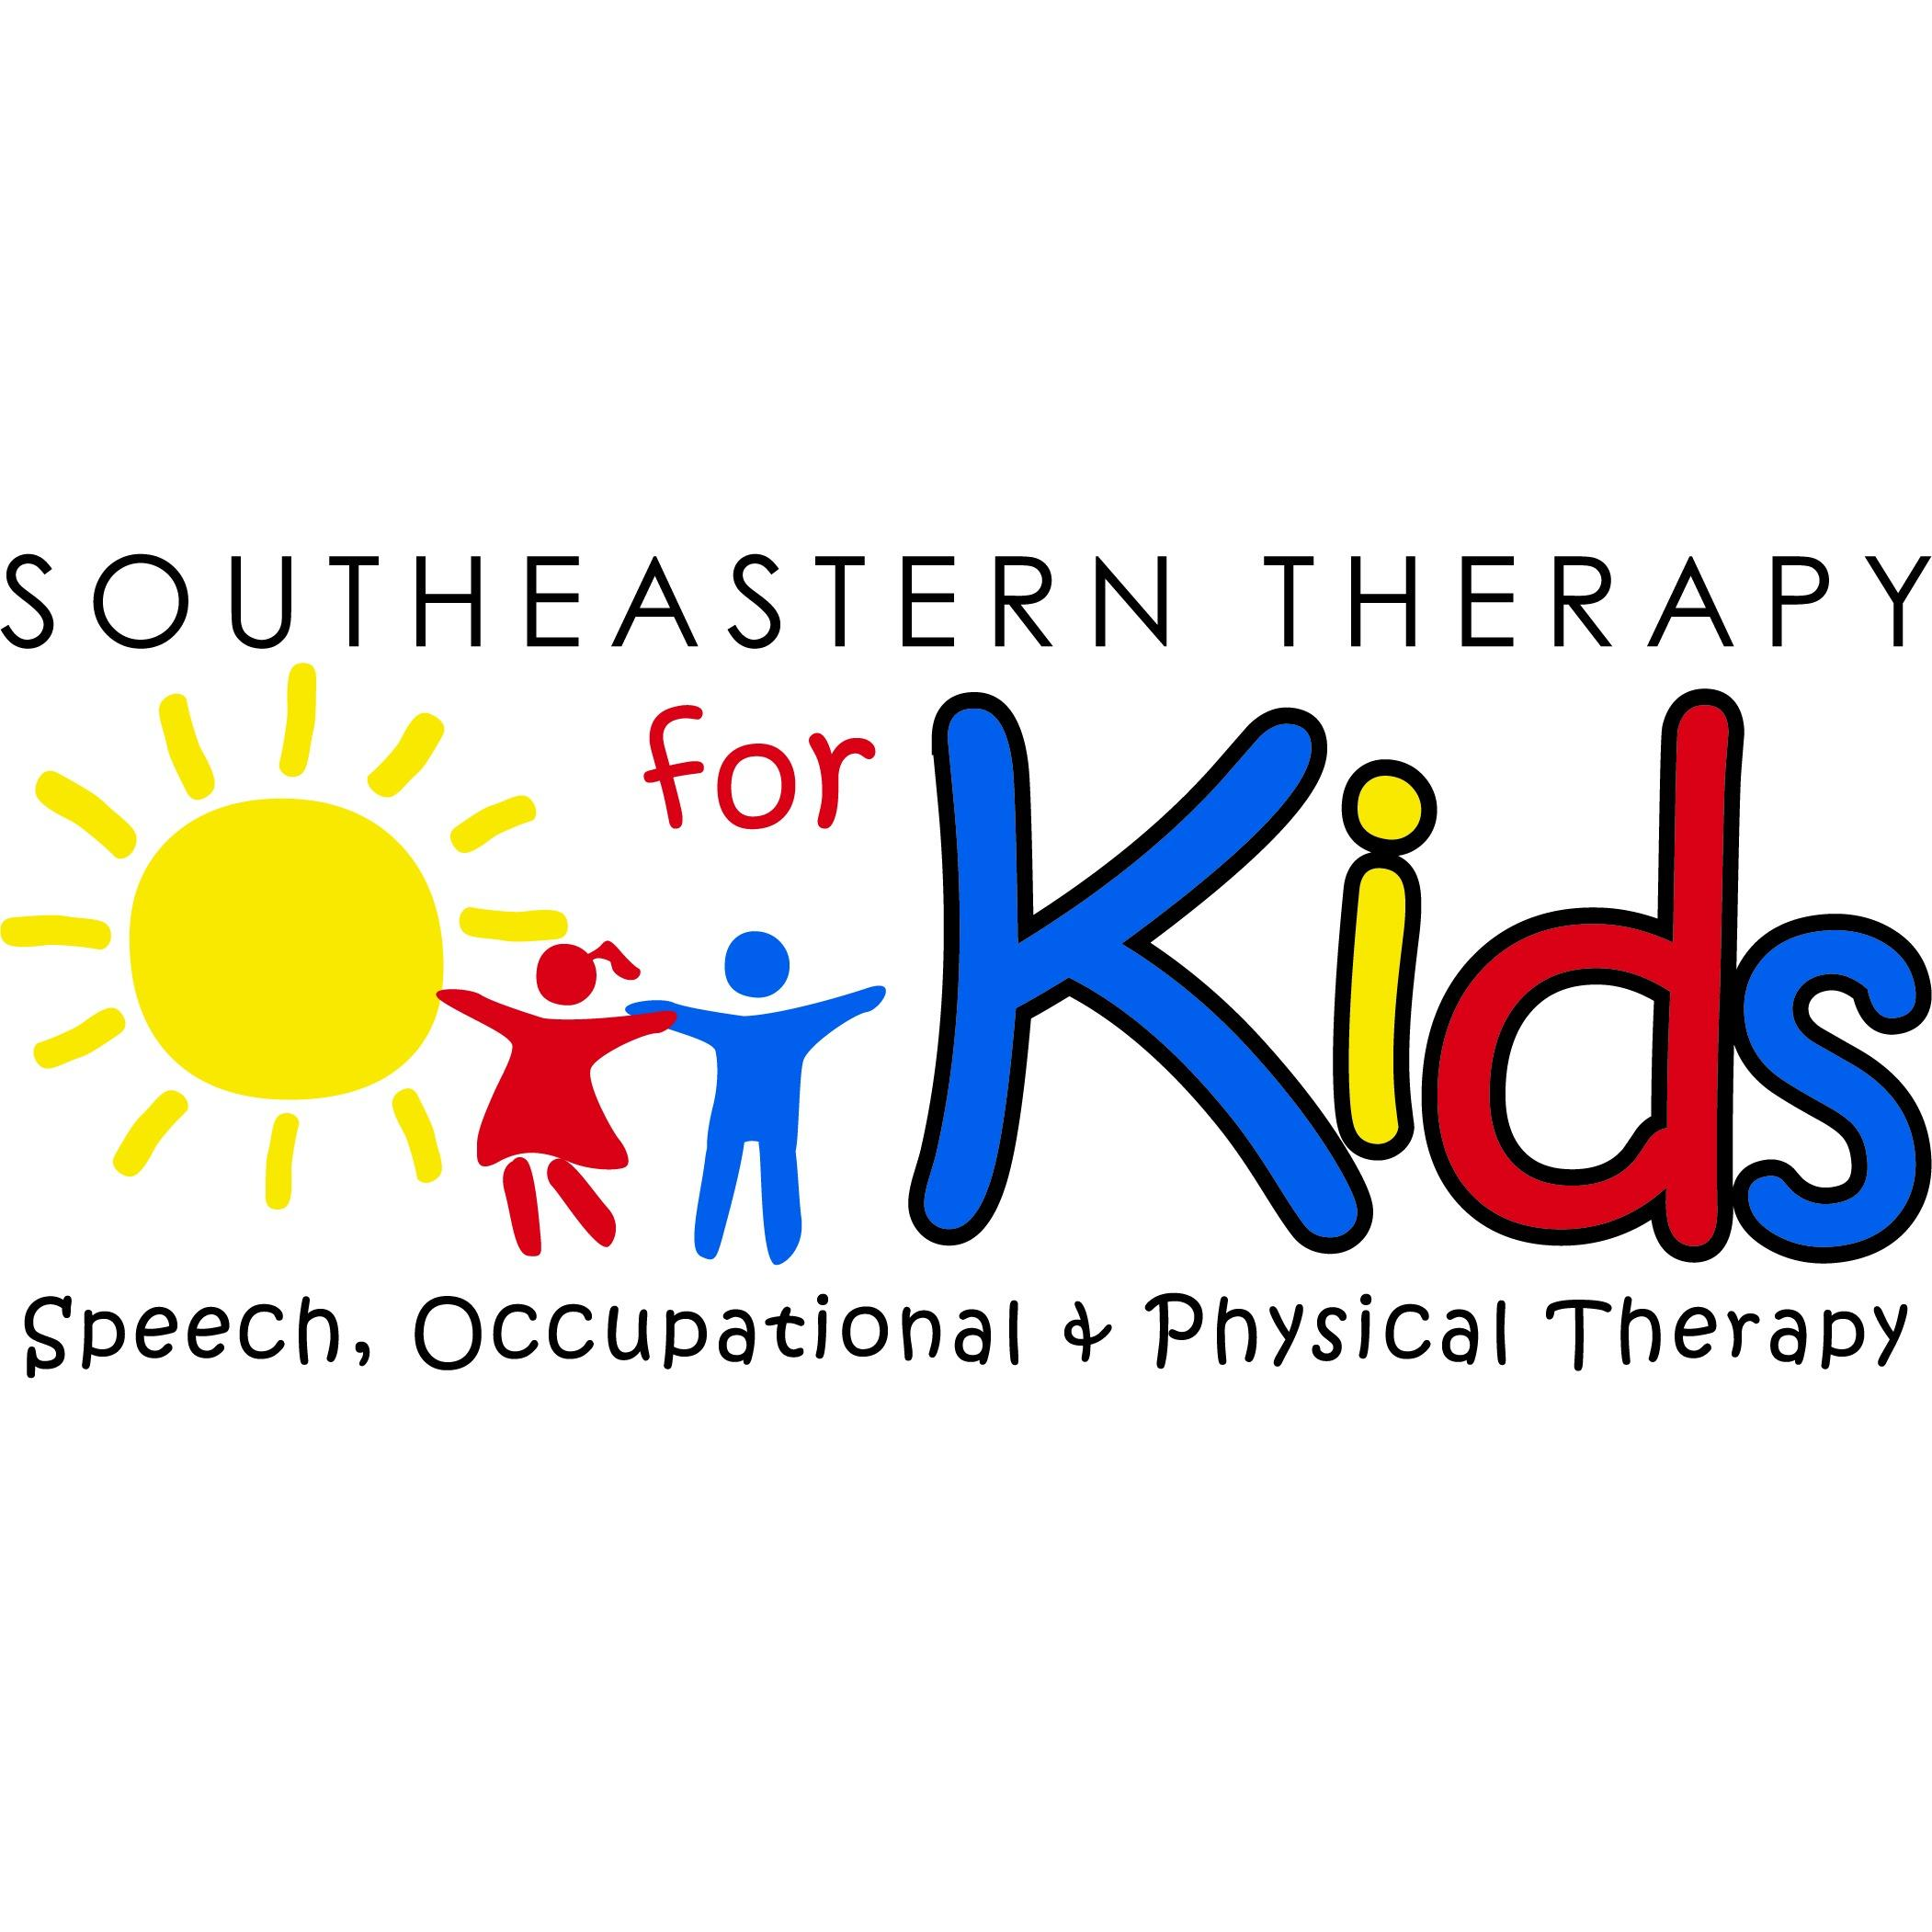 Southeastern Therapy for Kids